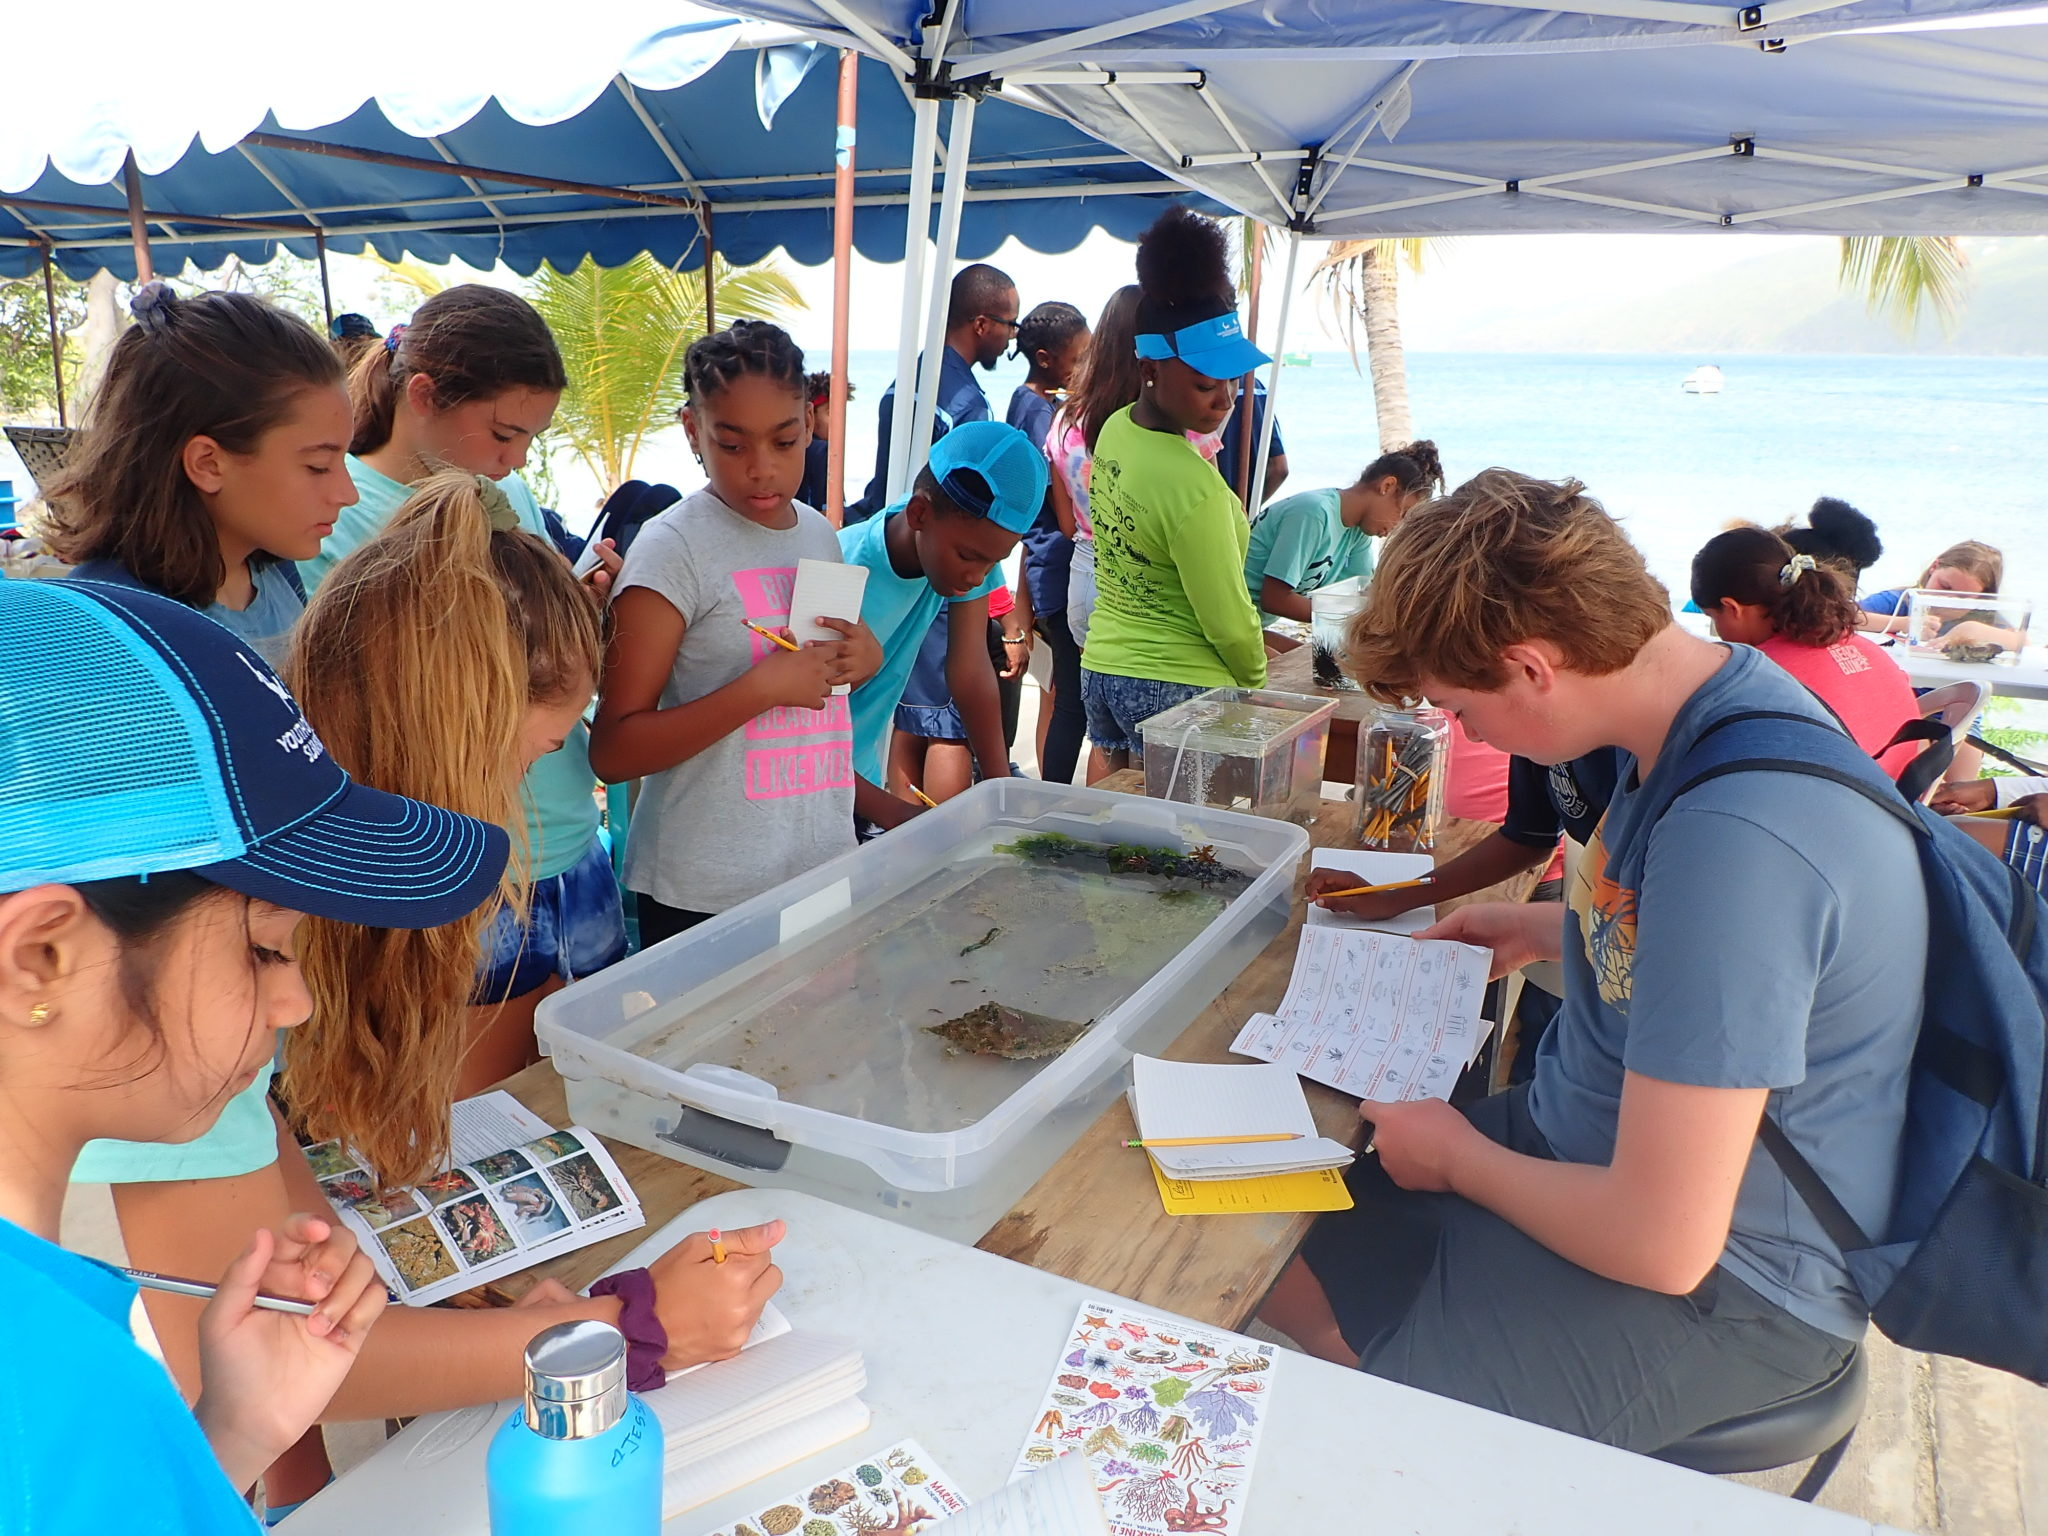 Students that participate in the Youth Ocean Explorers Program get to learn marine science in a hands on learning environment (Photo Courtesy of Youth Ocean Explorers Program)